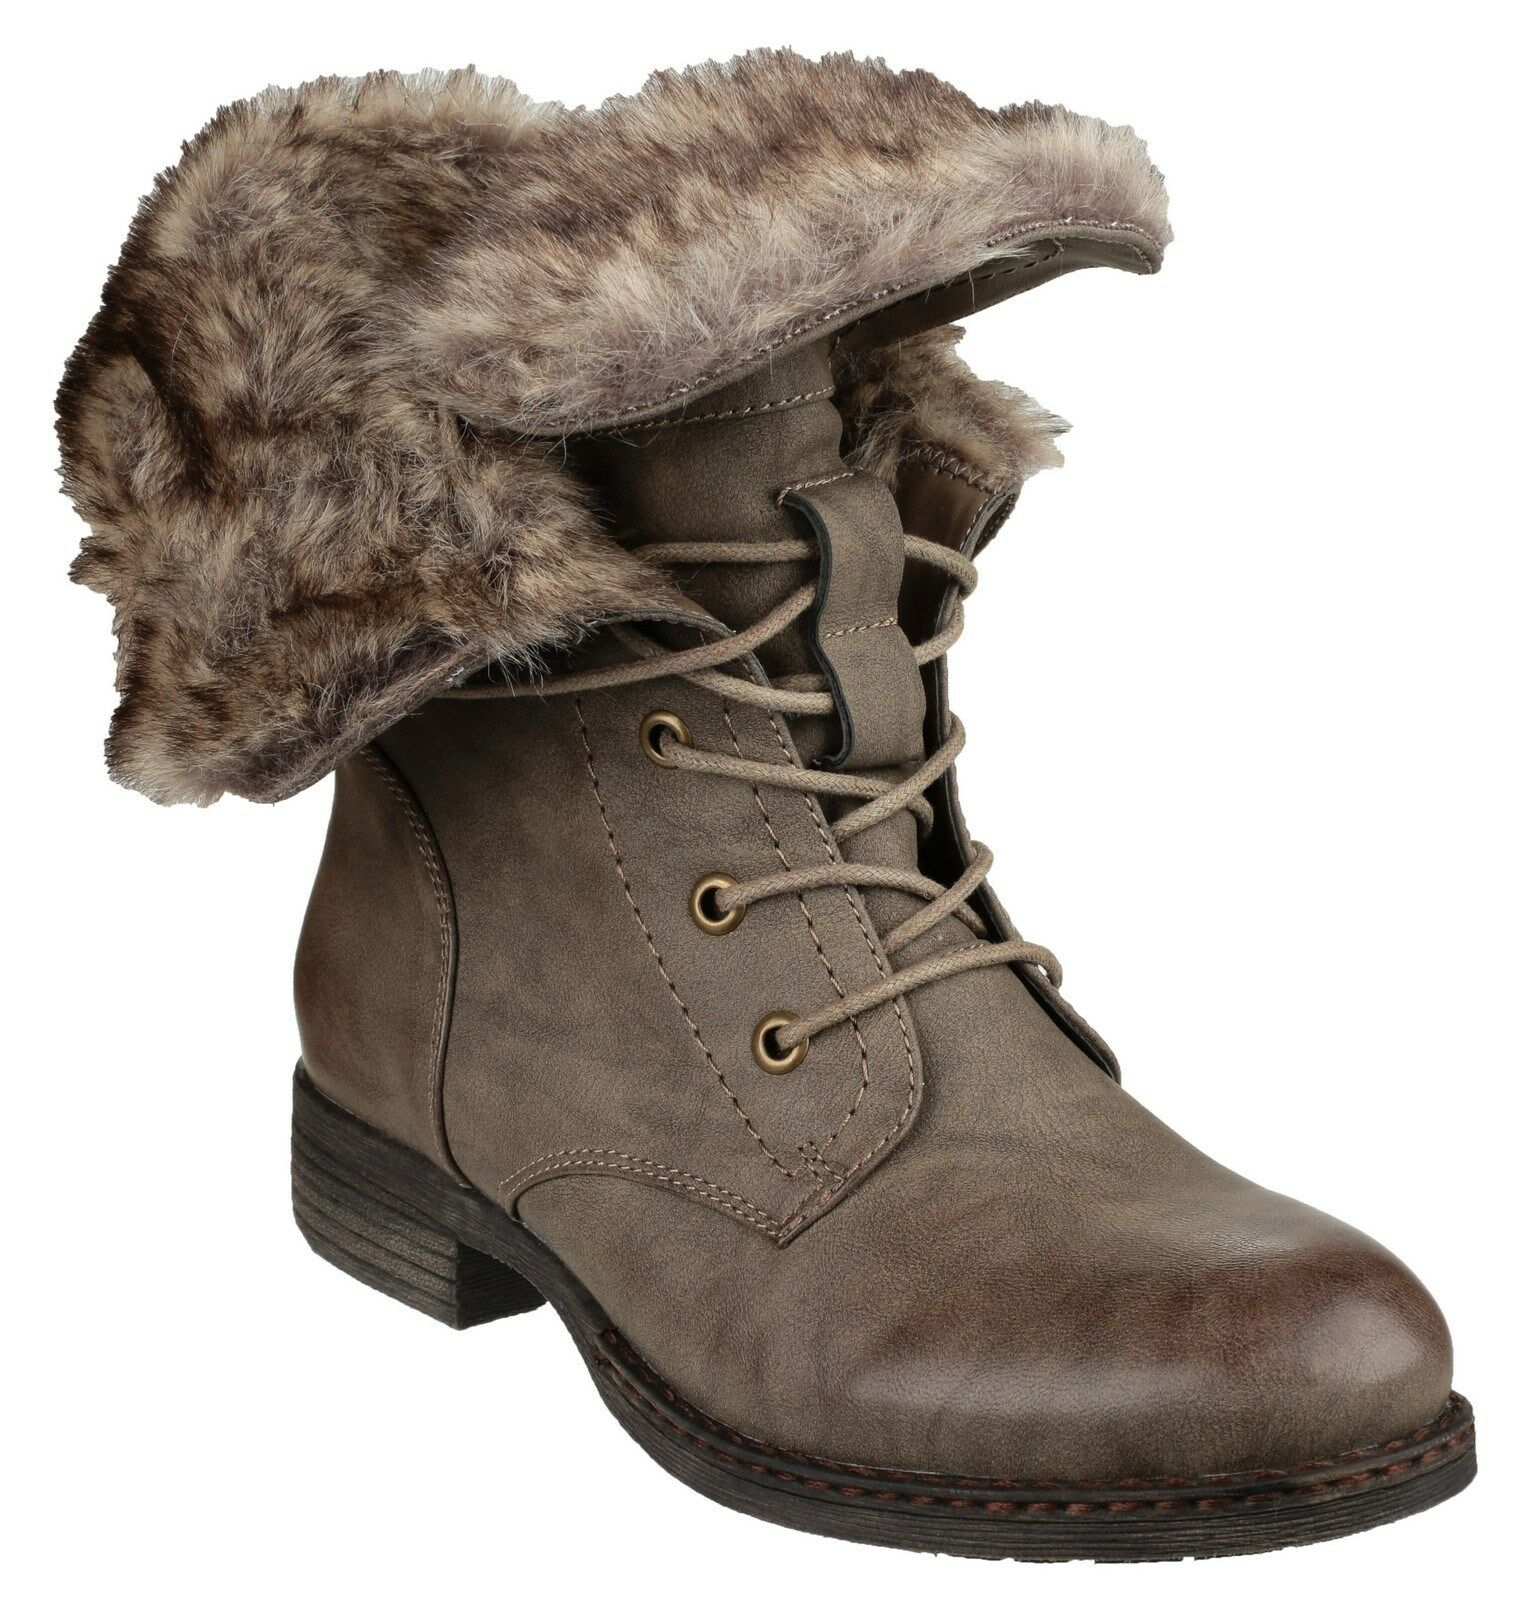 Divaz Leigh Ankle Lace Up Damenschuhe Braun Fashion Stiefel Schuhes UK3-8